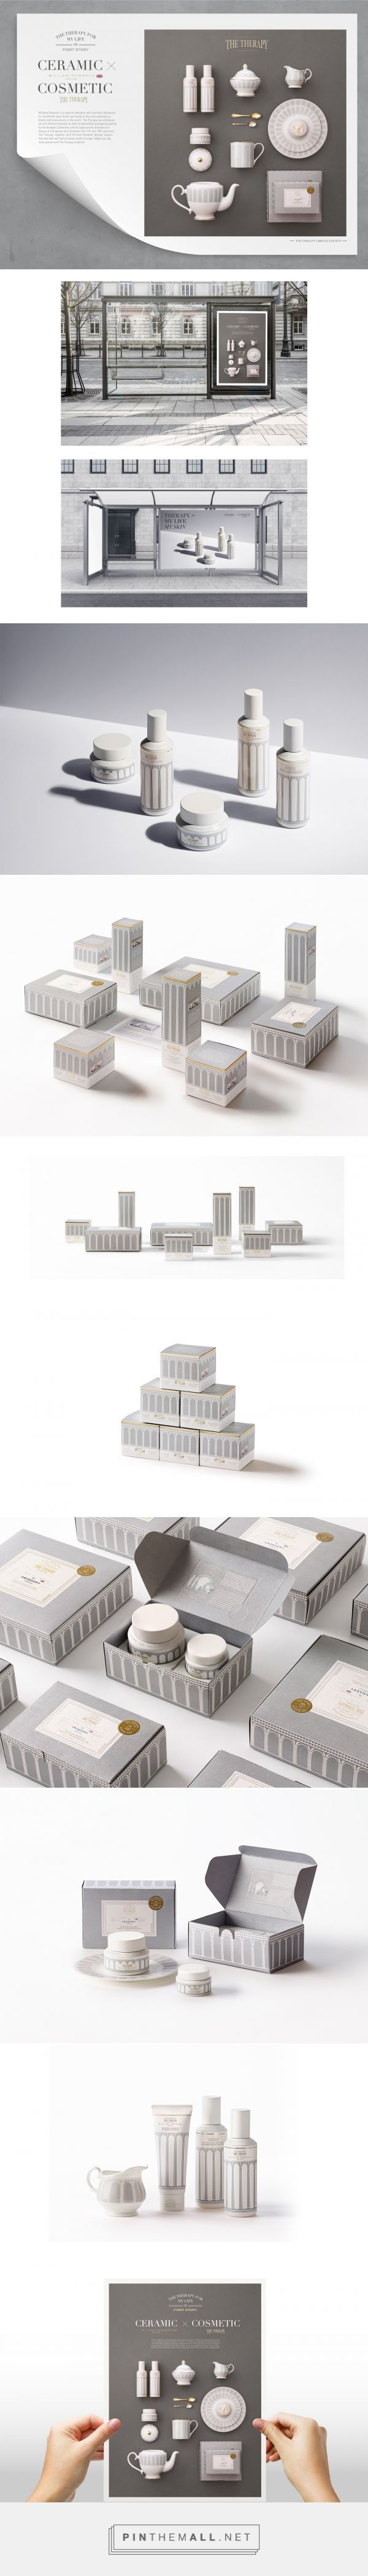 Cosmetic X Ceramic packaging design by THEFACESHOP - http://www.packagingoftheworld.com/2017/05/cosmetic-x-ceramic-therapy-william.html